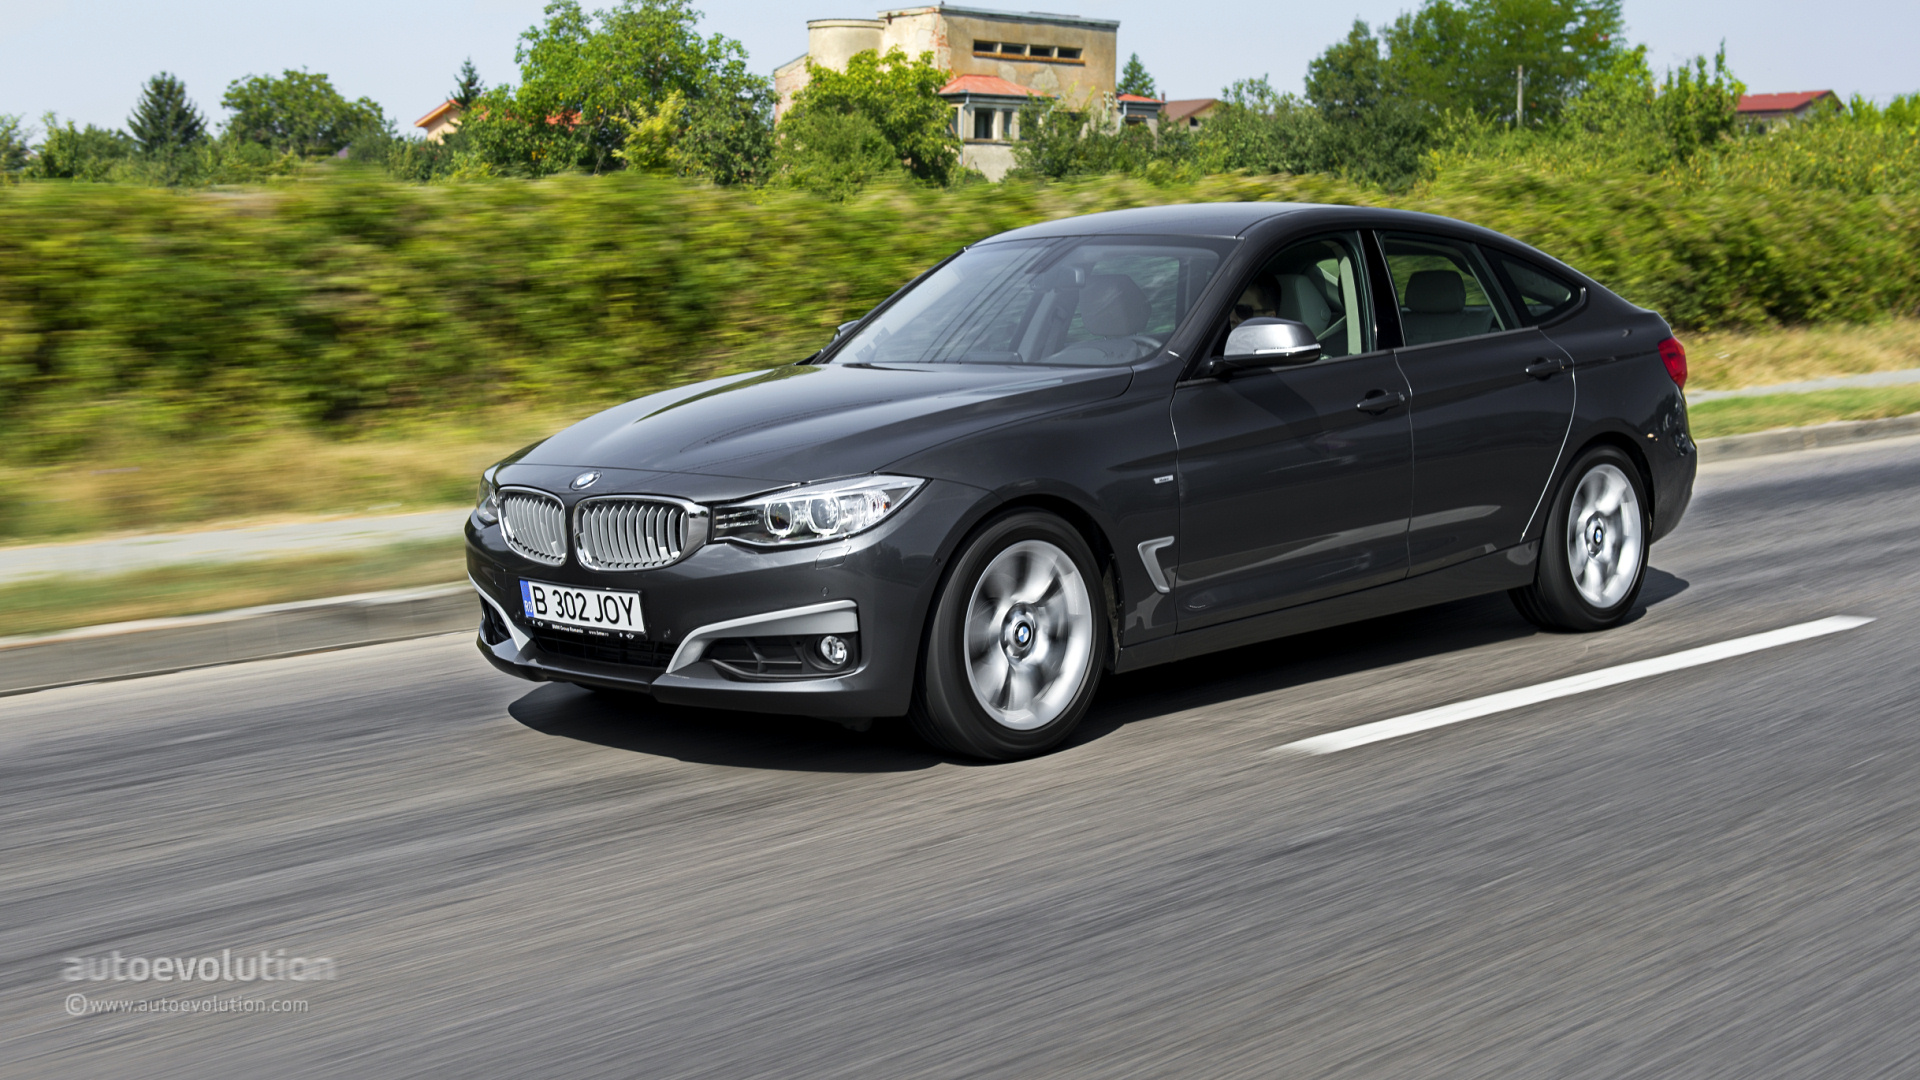 bmw 3 series gran turismo review autoevolution. Black Bedroom Furniture Sets. Home Design Ideas